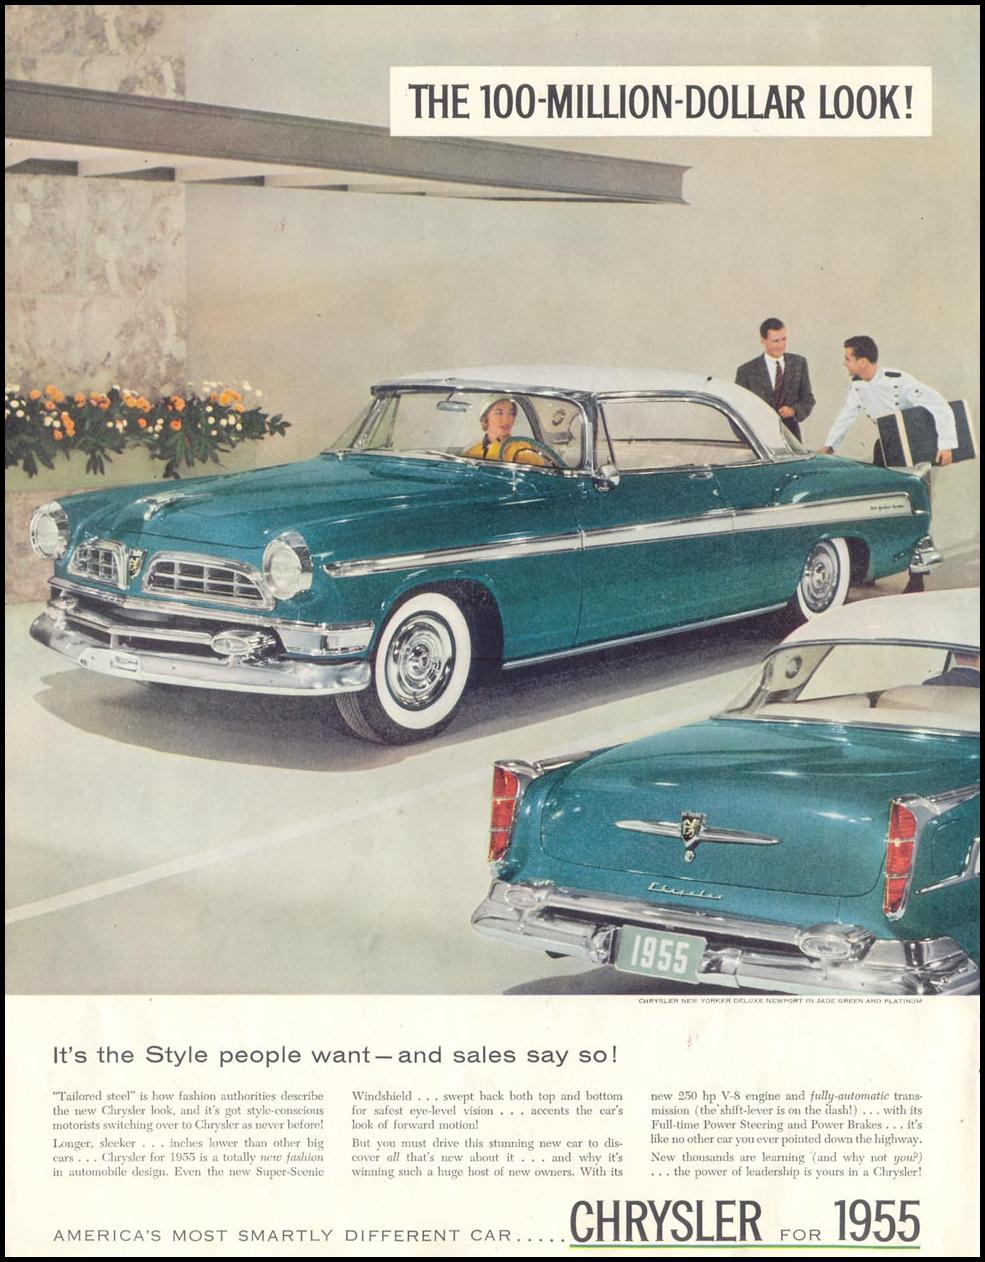 CHRYSLER AUTOMOBILES SATURDAY EVENING POST 02/05/1955